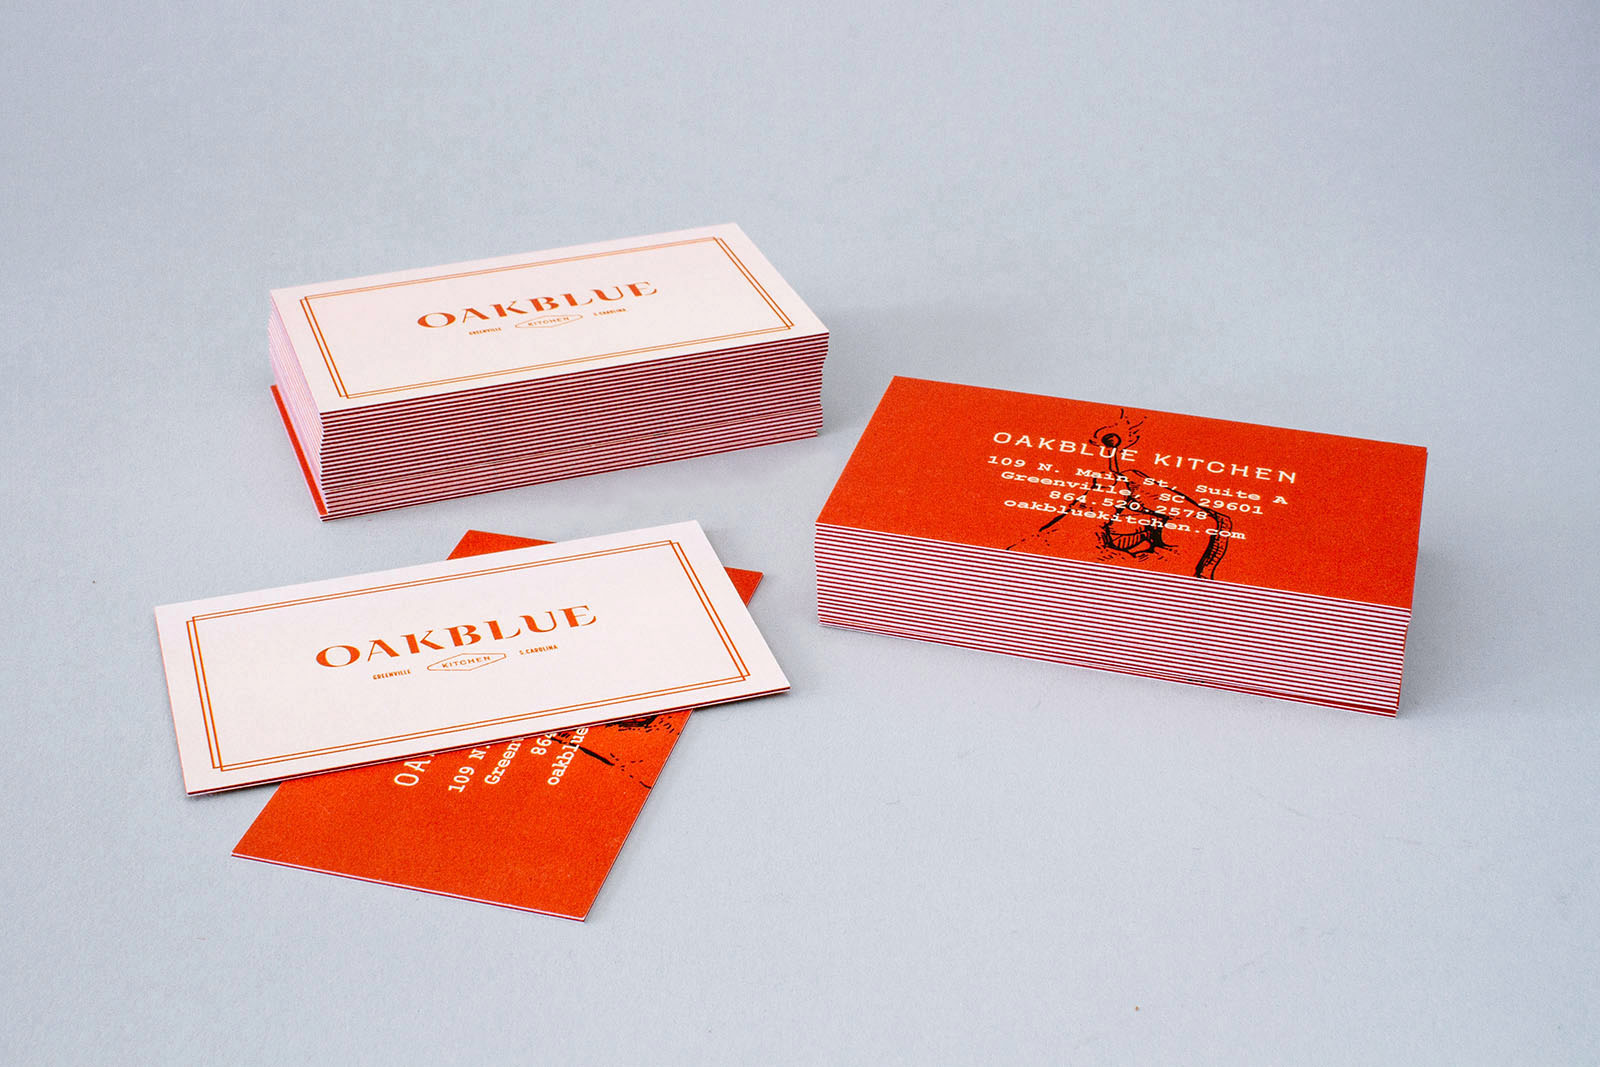 Stack of Oakblue Kitchen restaurant business cards, with red side seam.